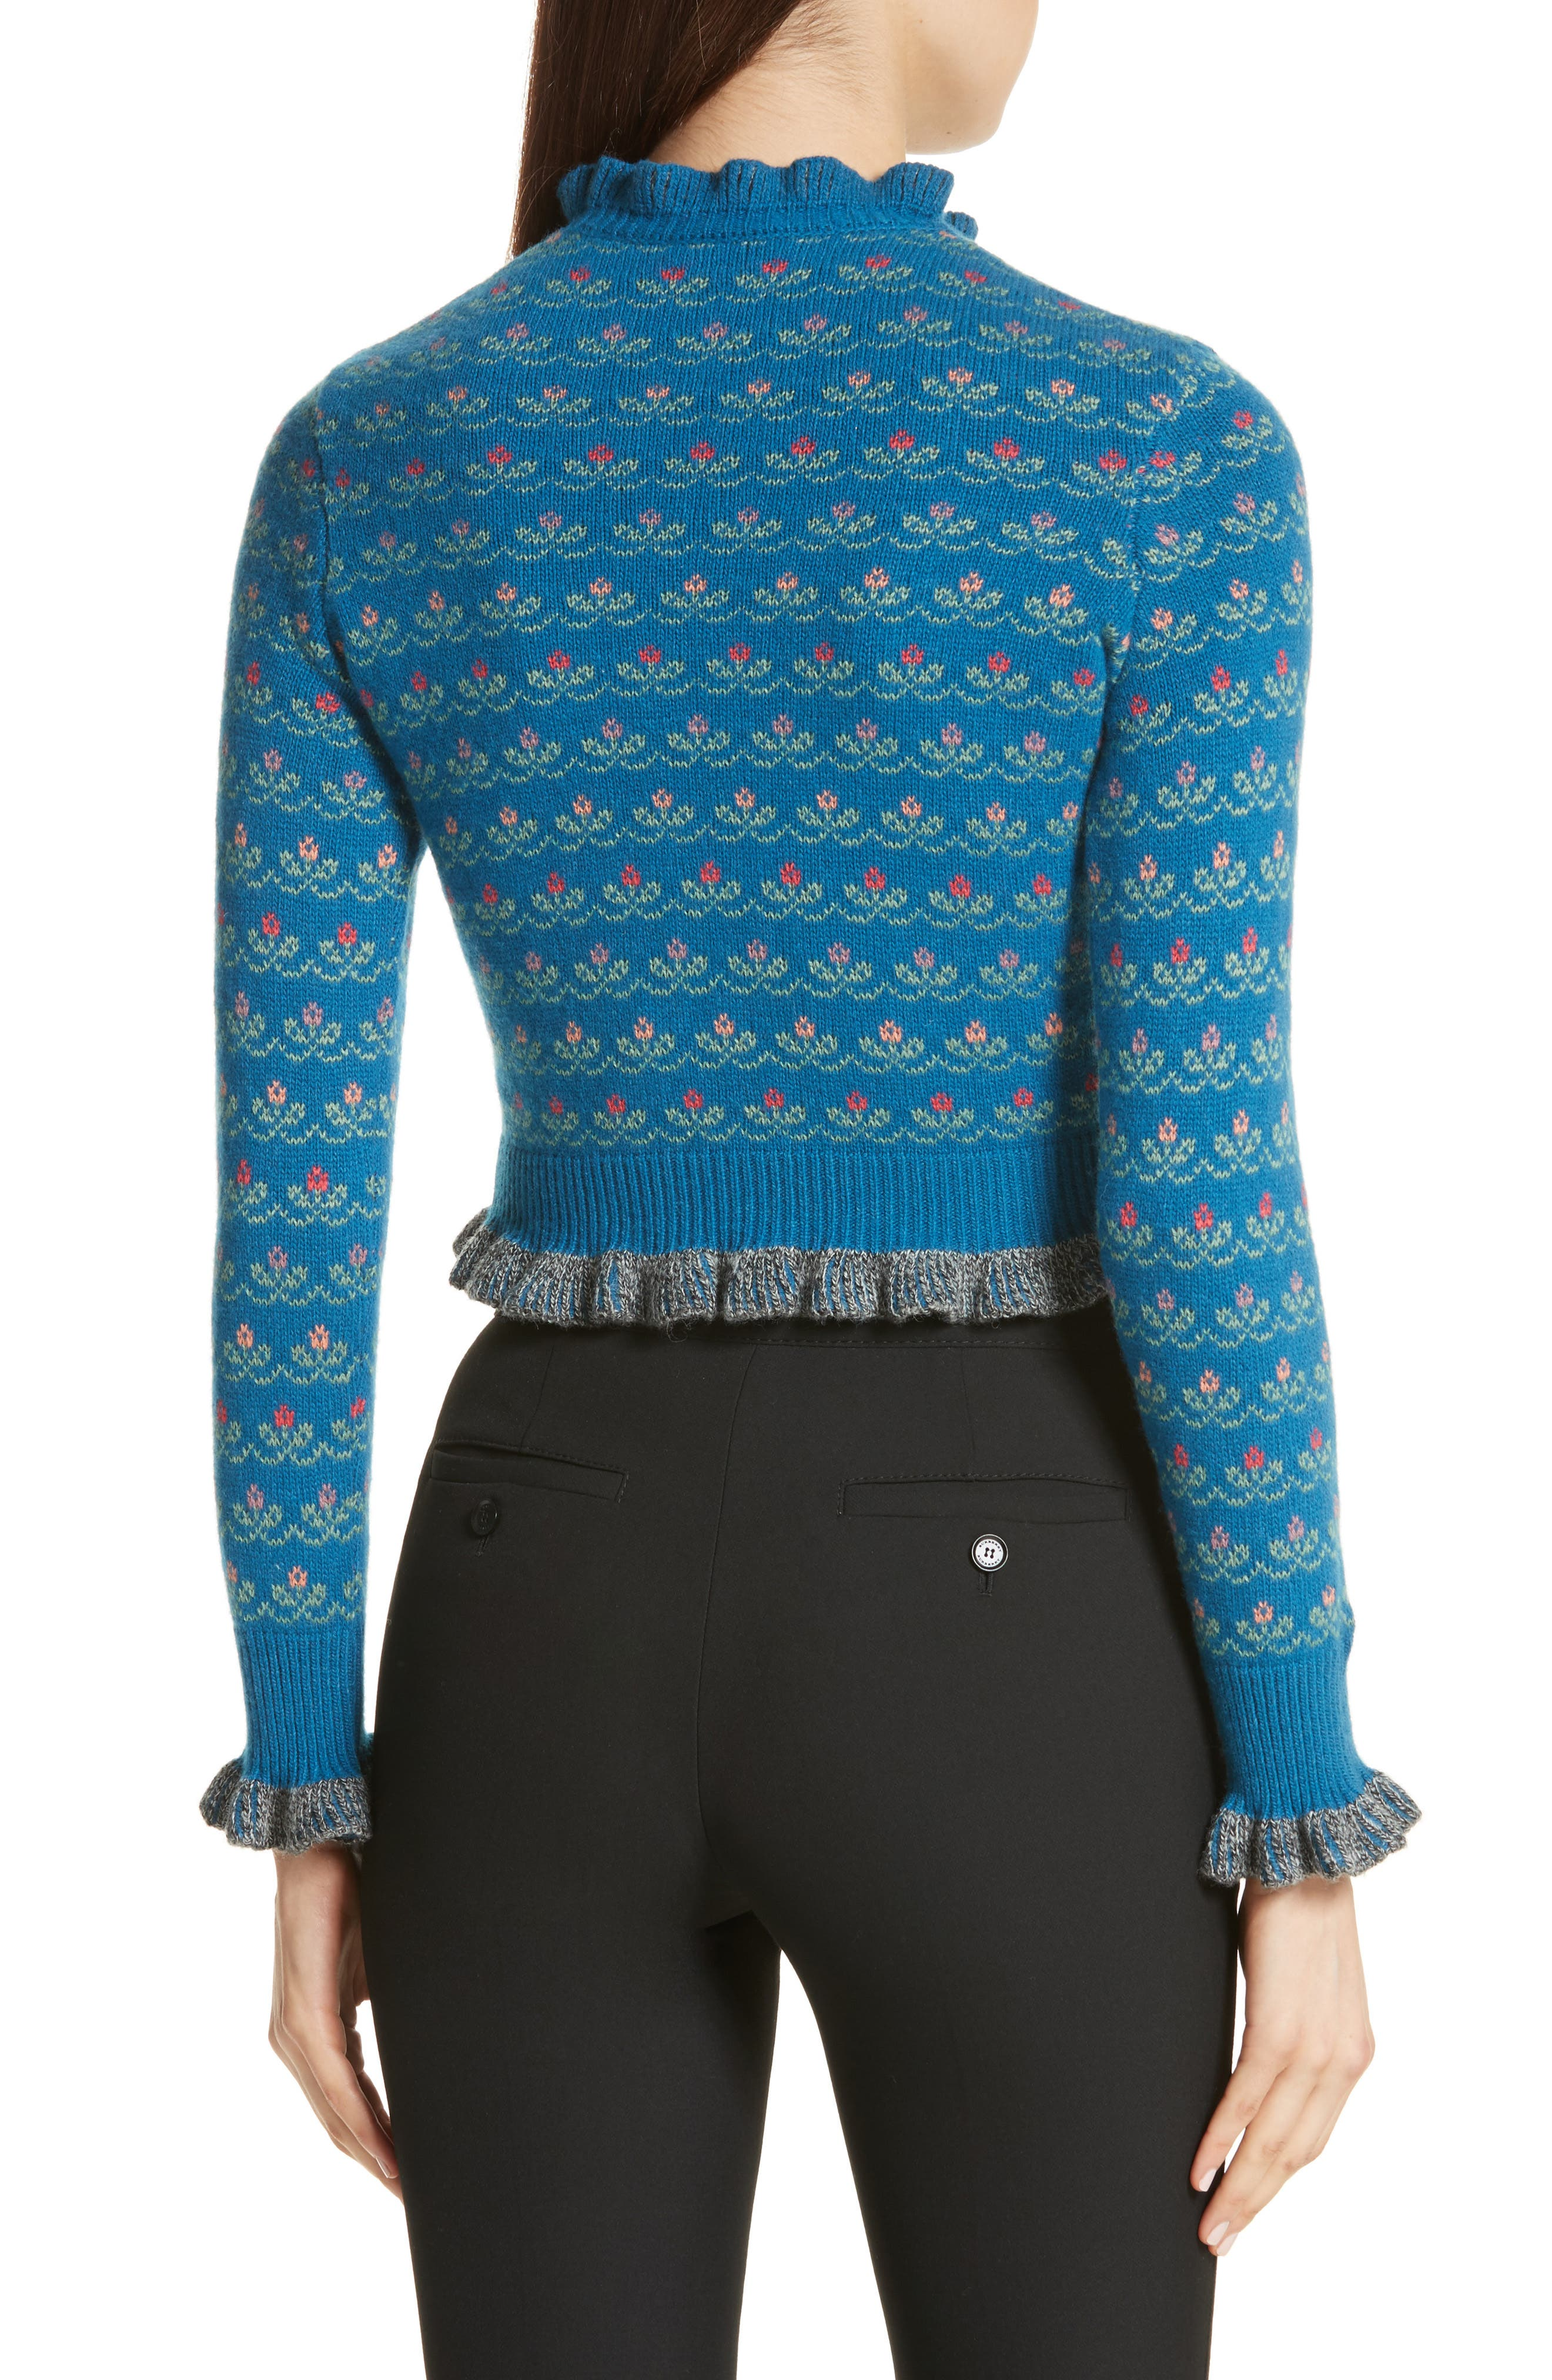 Floral Jacquard Carded Wool Blend Sweater,                             Alternate thumbnail 2, color,                             Lapislazzuli